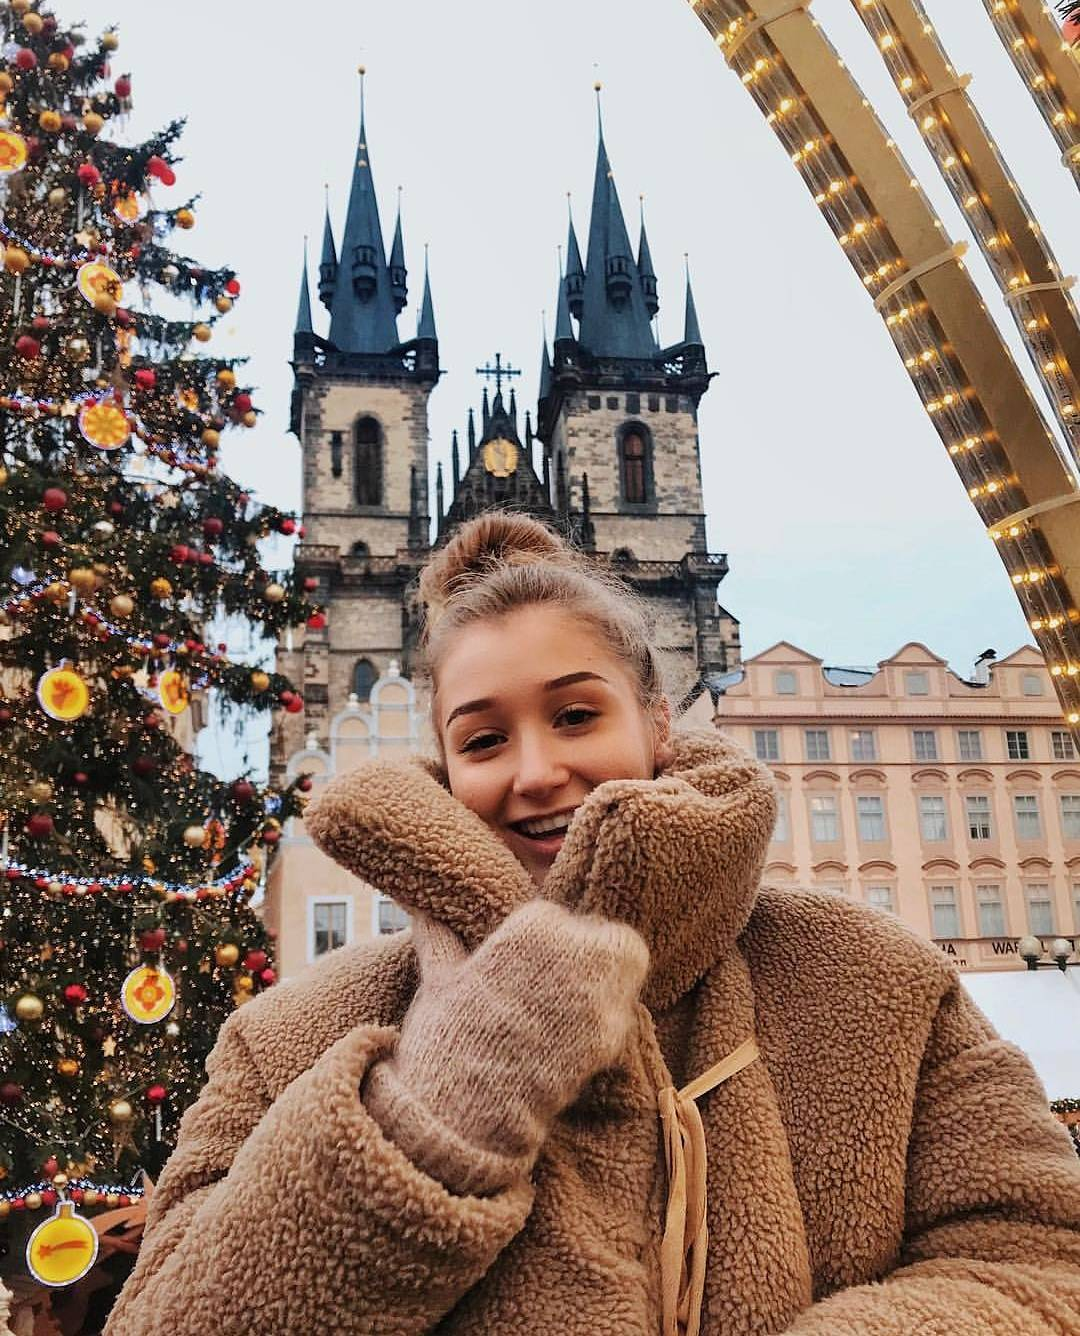 A girl in warm wool cloths and smiling beside a Christmas tree in old town square in Prague in winter